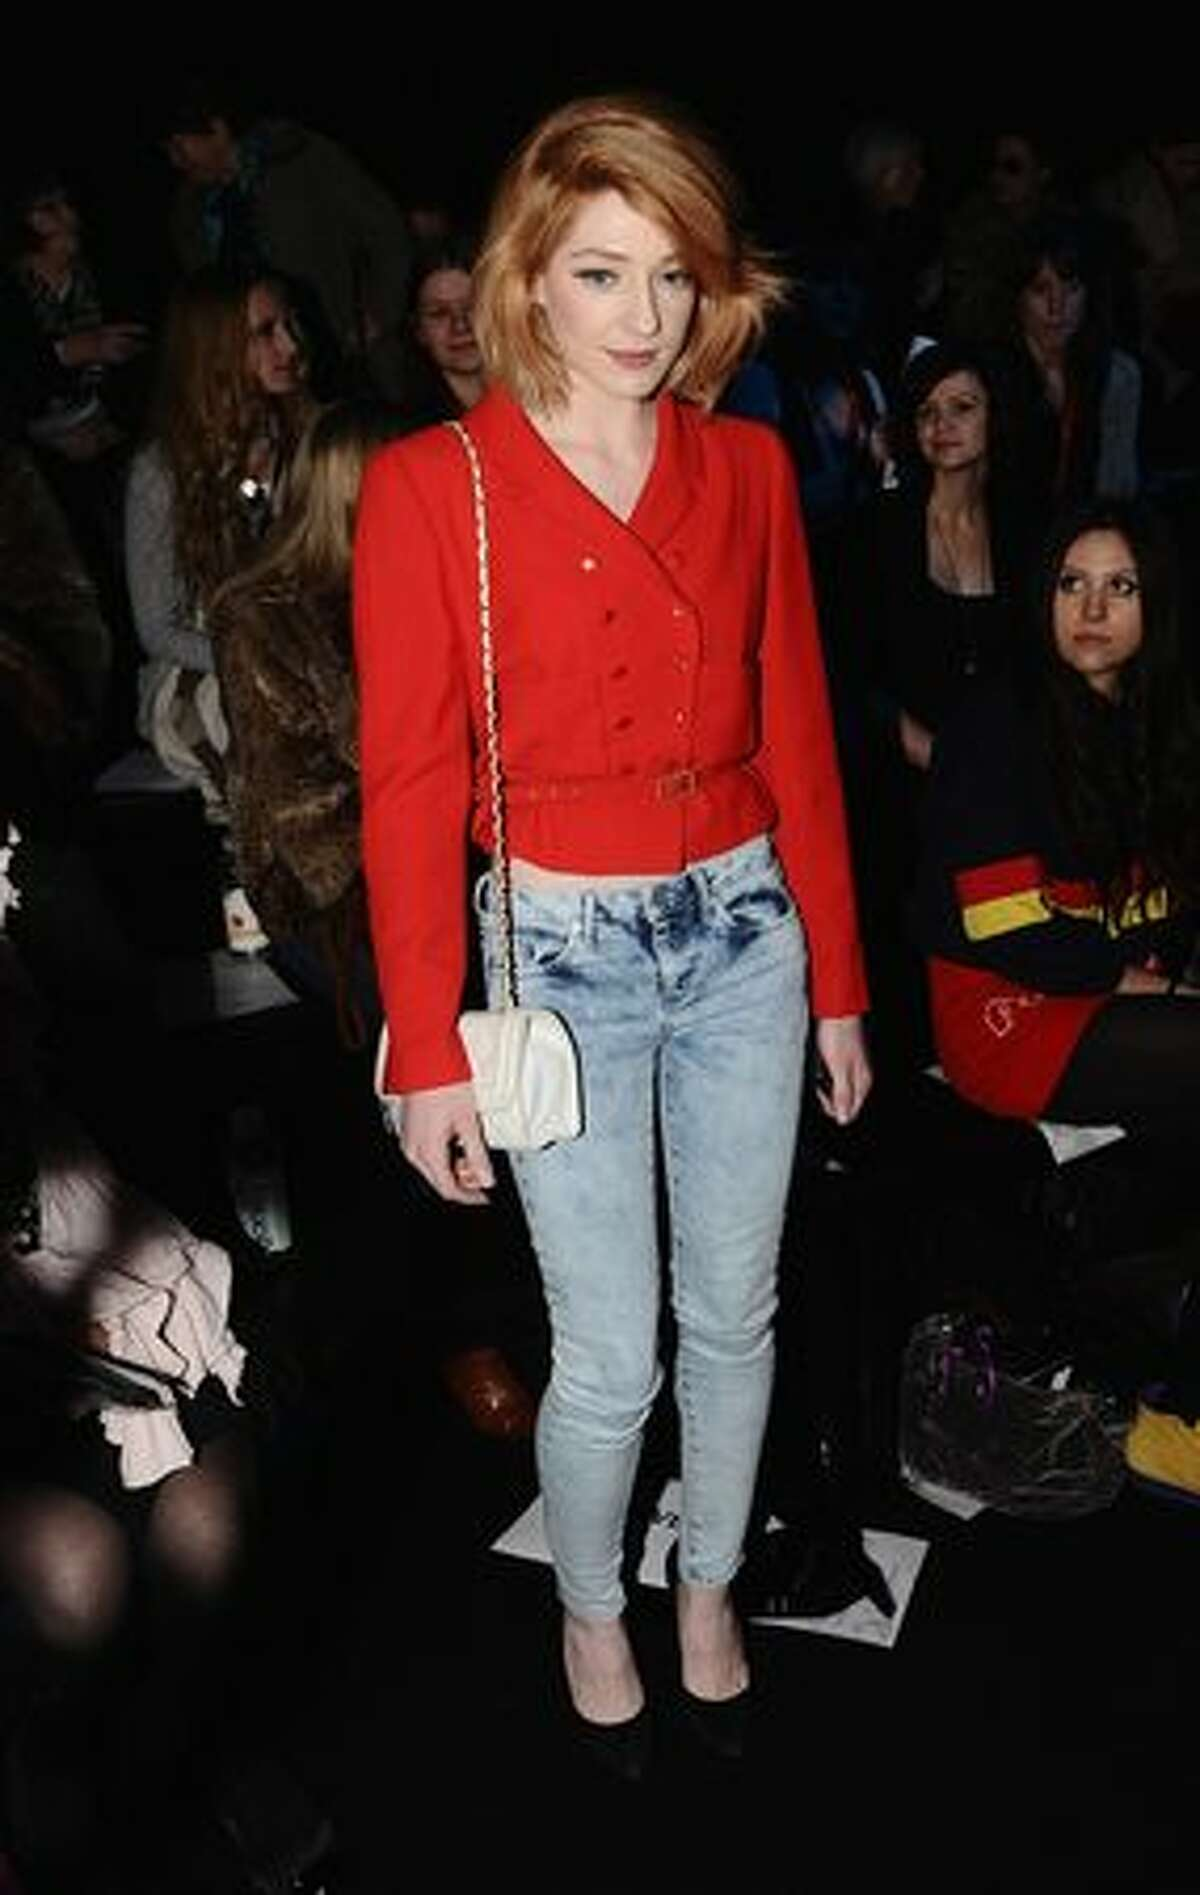 Nicola Roberts attends the Jena.Theo Fashion Show as part of London Fashion Week at Somerset House in London, England.